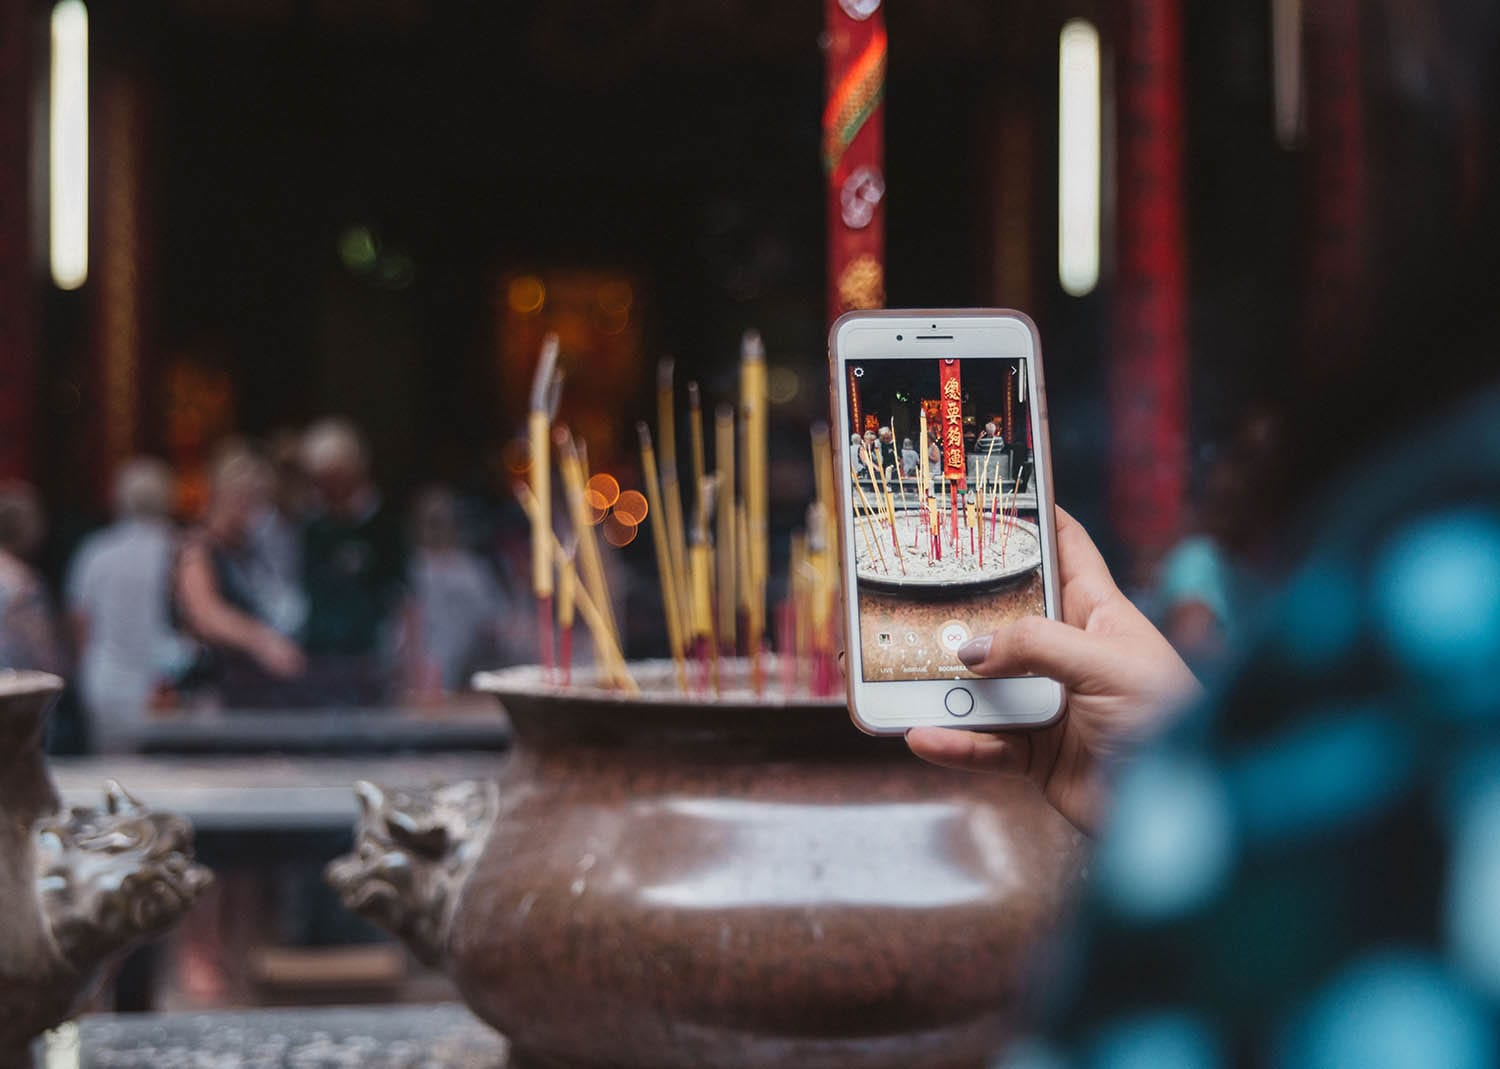 Photo of iPhone taking photo of incense burning at Ong Bon Pagaoda